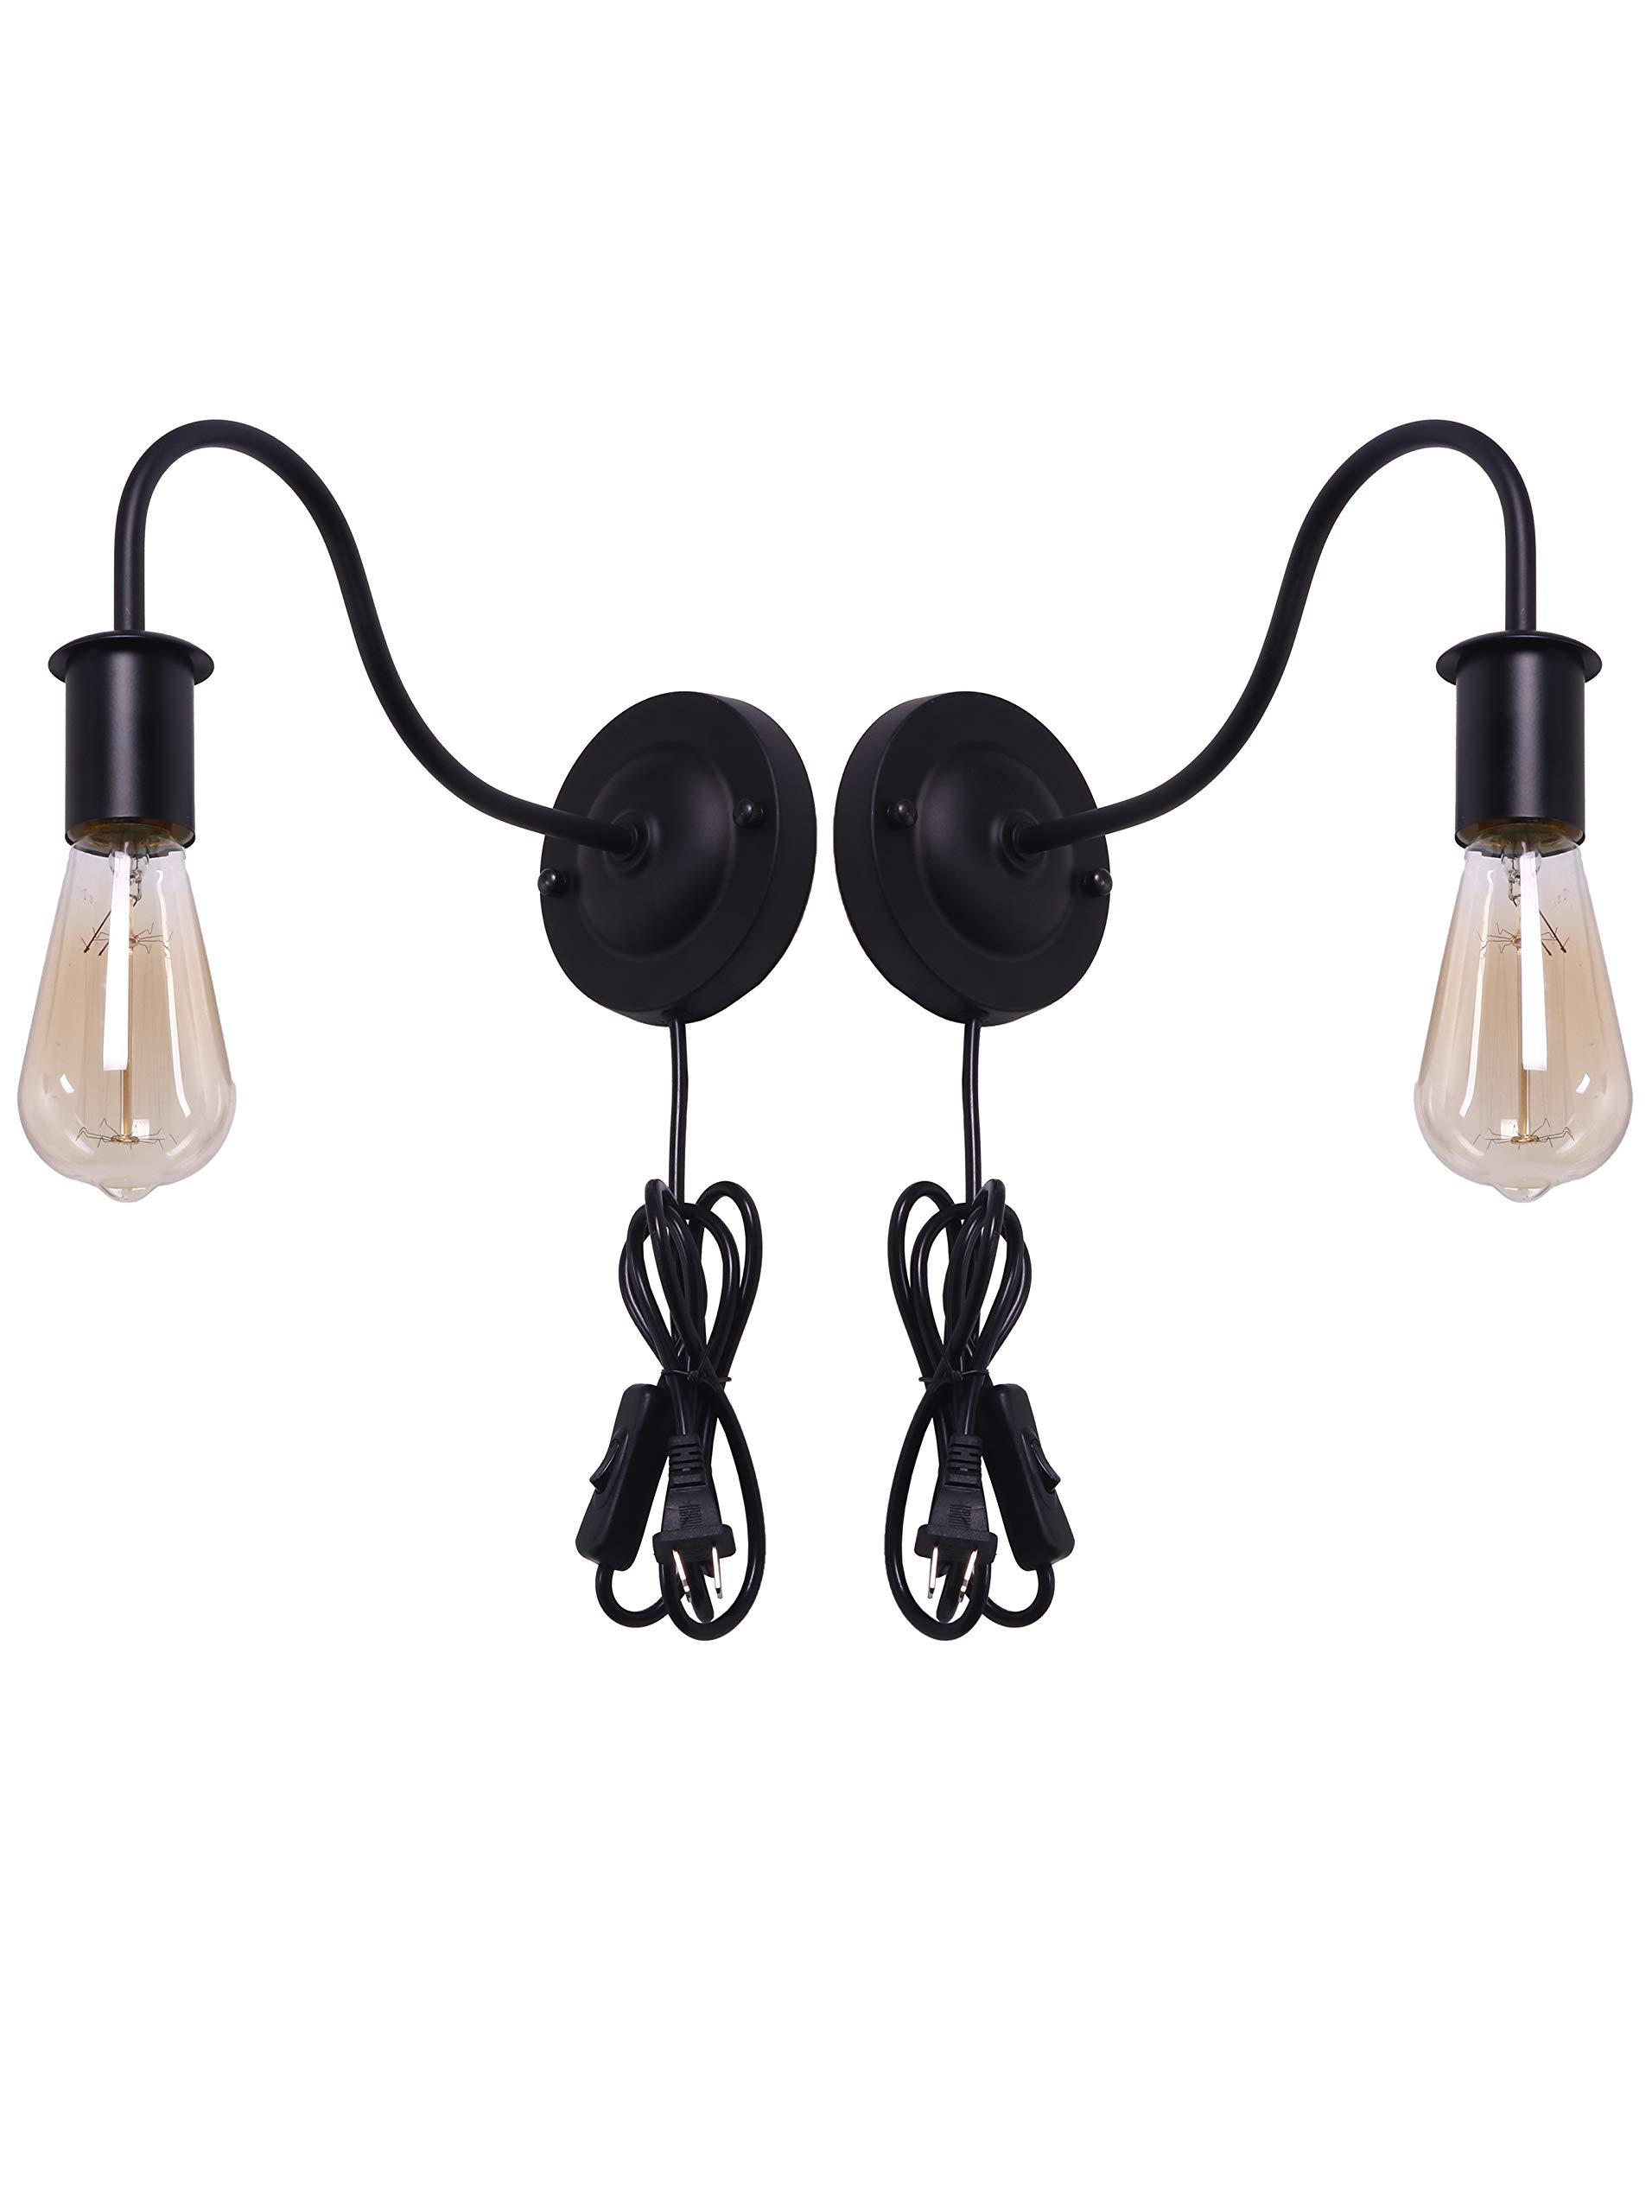 "BRIGHTESS W8909 Retro Wall Sconces Light Gooseneck Barn Lights Wall Mount Set of 2 Packs E26 Base Plug in Black Industrial Vintage Edison Wall Lamp Fixture Led Porch Light(2packs) - Retro style wall Lamp Illuminates deck, front porch, driveway and decor your Home. Led wall lamp,Dimensions:L10""xH6, Back Plate Dia 4.7"". SOLID METAL CONSTRUCTION: Made of high quality brass metal and baking paint finish. VOLTAGE: AC110V for North America.USA STANDARD E26 Base. Light bulb NOT Included. Bulb types: LED, CFL, incandescent. Meet the standard fixture requirements. - bathroom-lights, bathroom-fixtures-hardware, bathroom - 71tgUqw%2BR0L -"